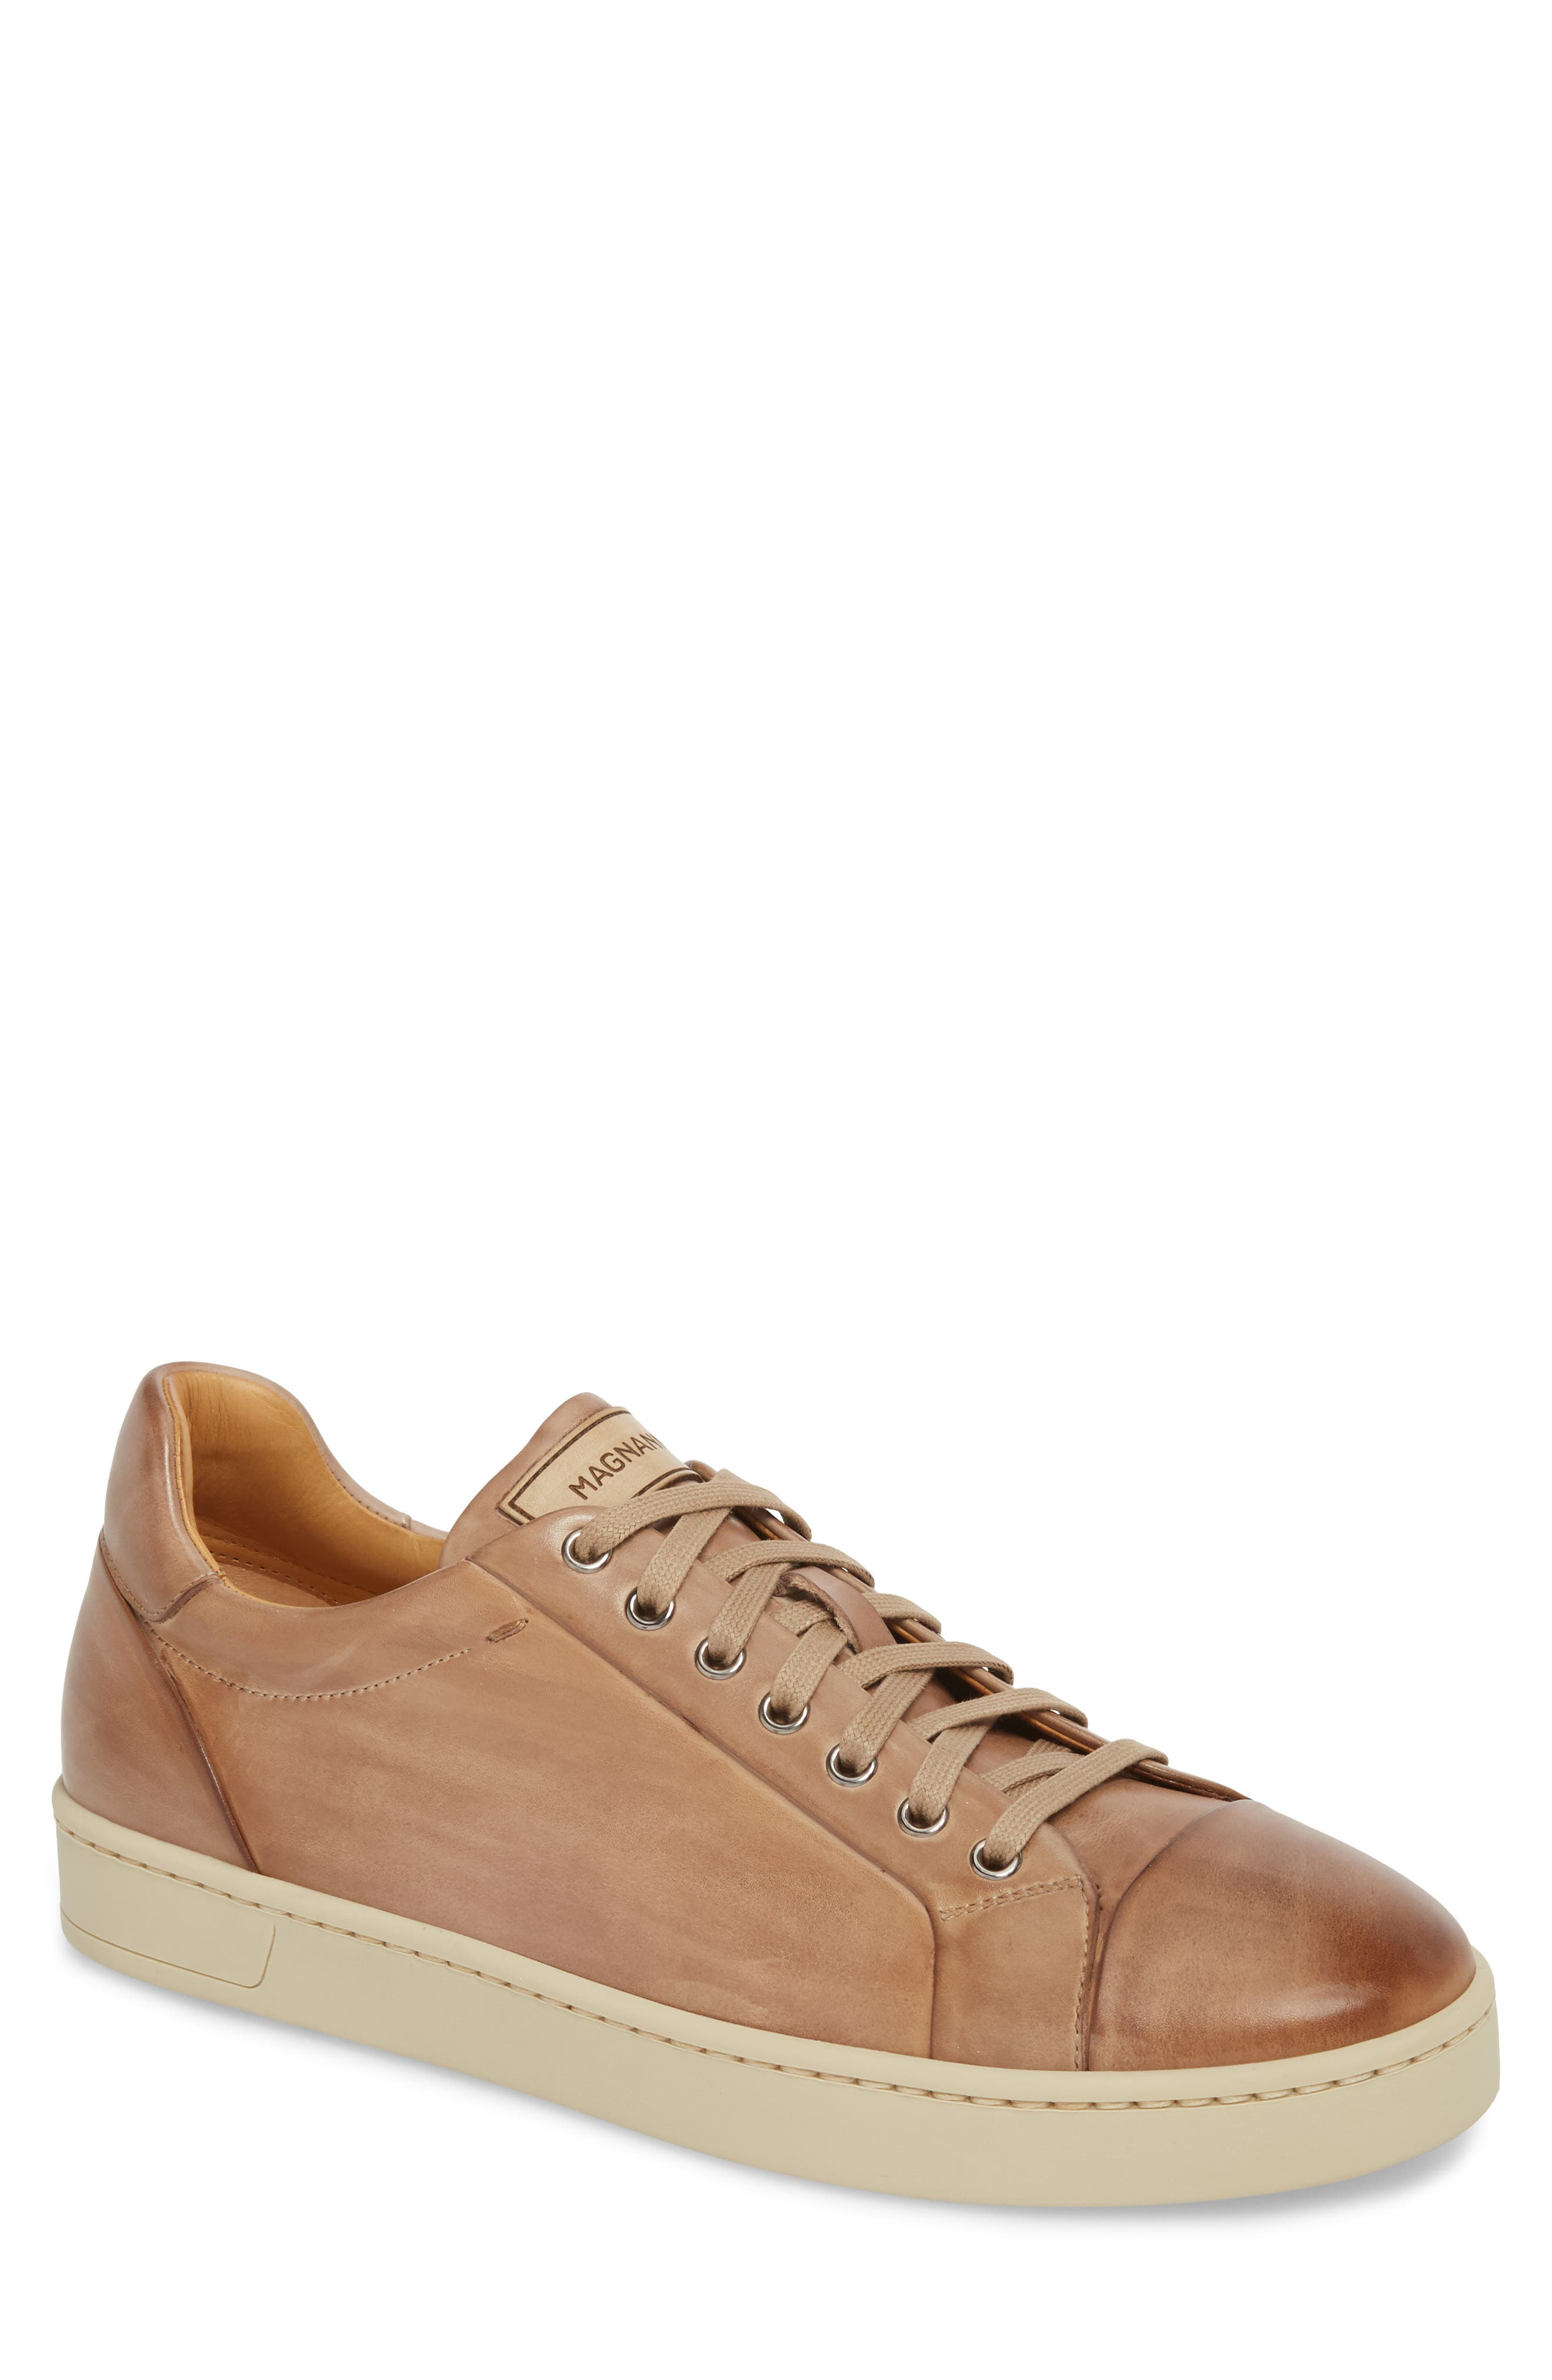 Erardo Low Top Sneaker,                             Main thumbnail 1, color,                             Taupe/ Taupe Leather